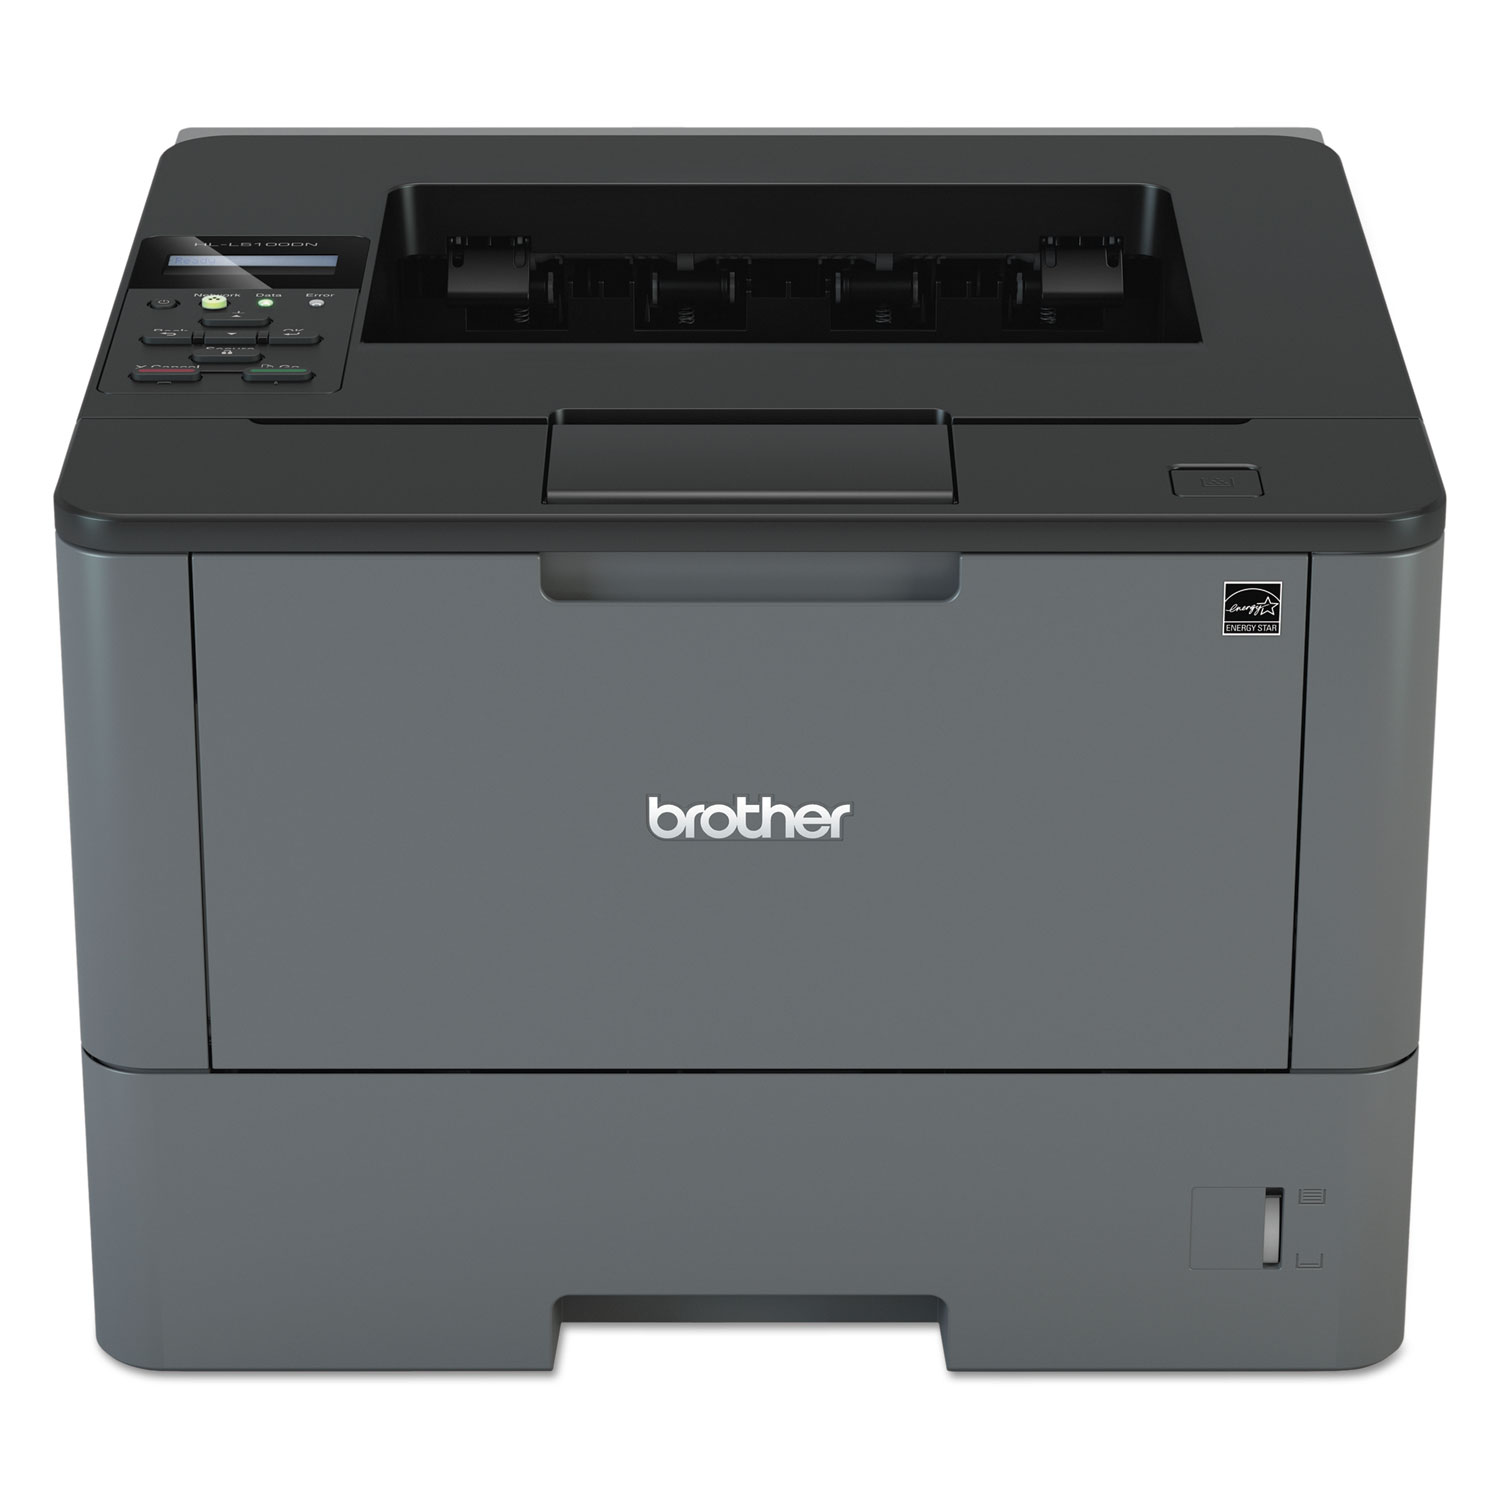 HL-L5100DN Business Laser Printer With Networking And Duplex Printing